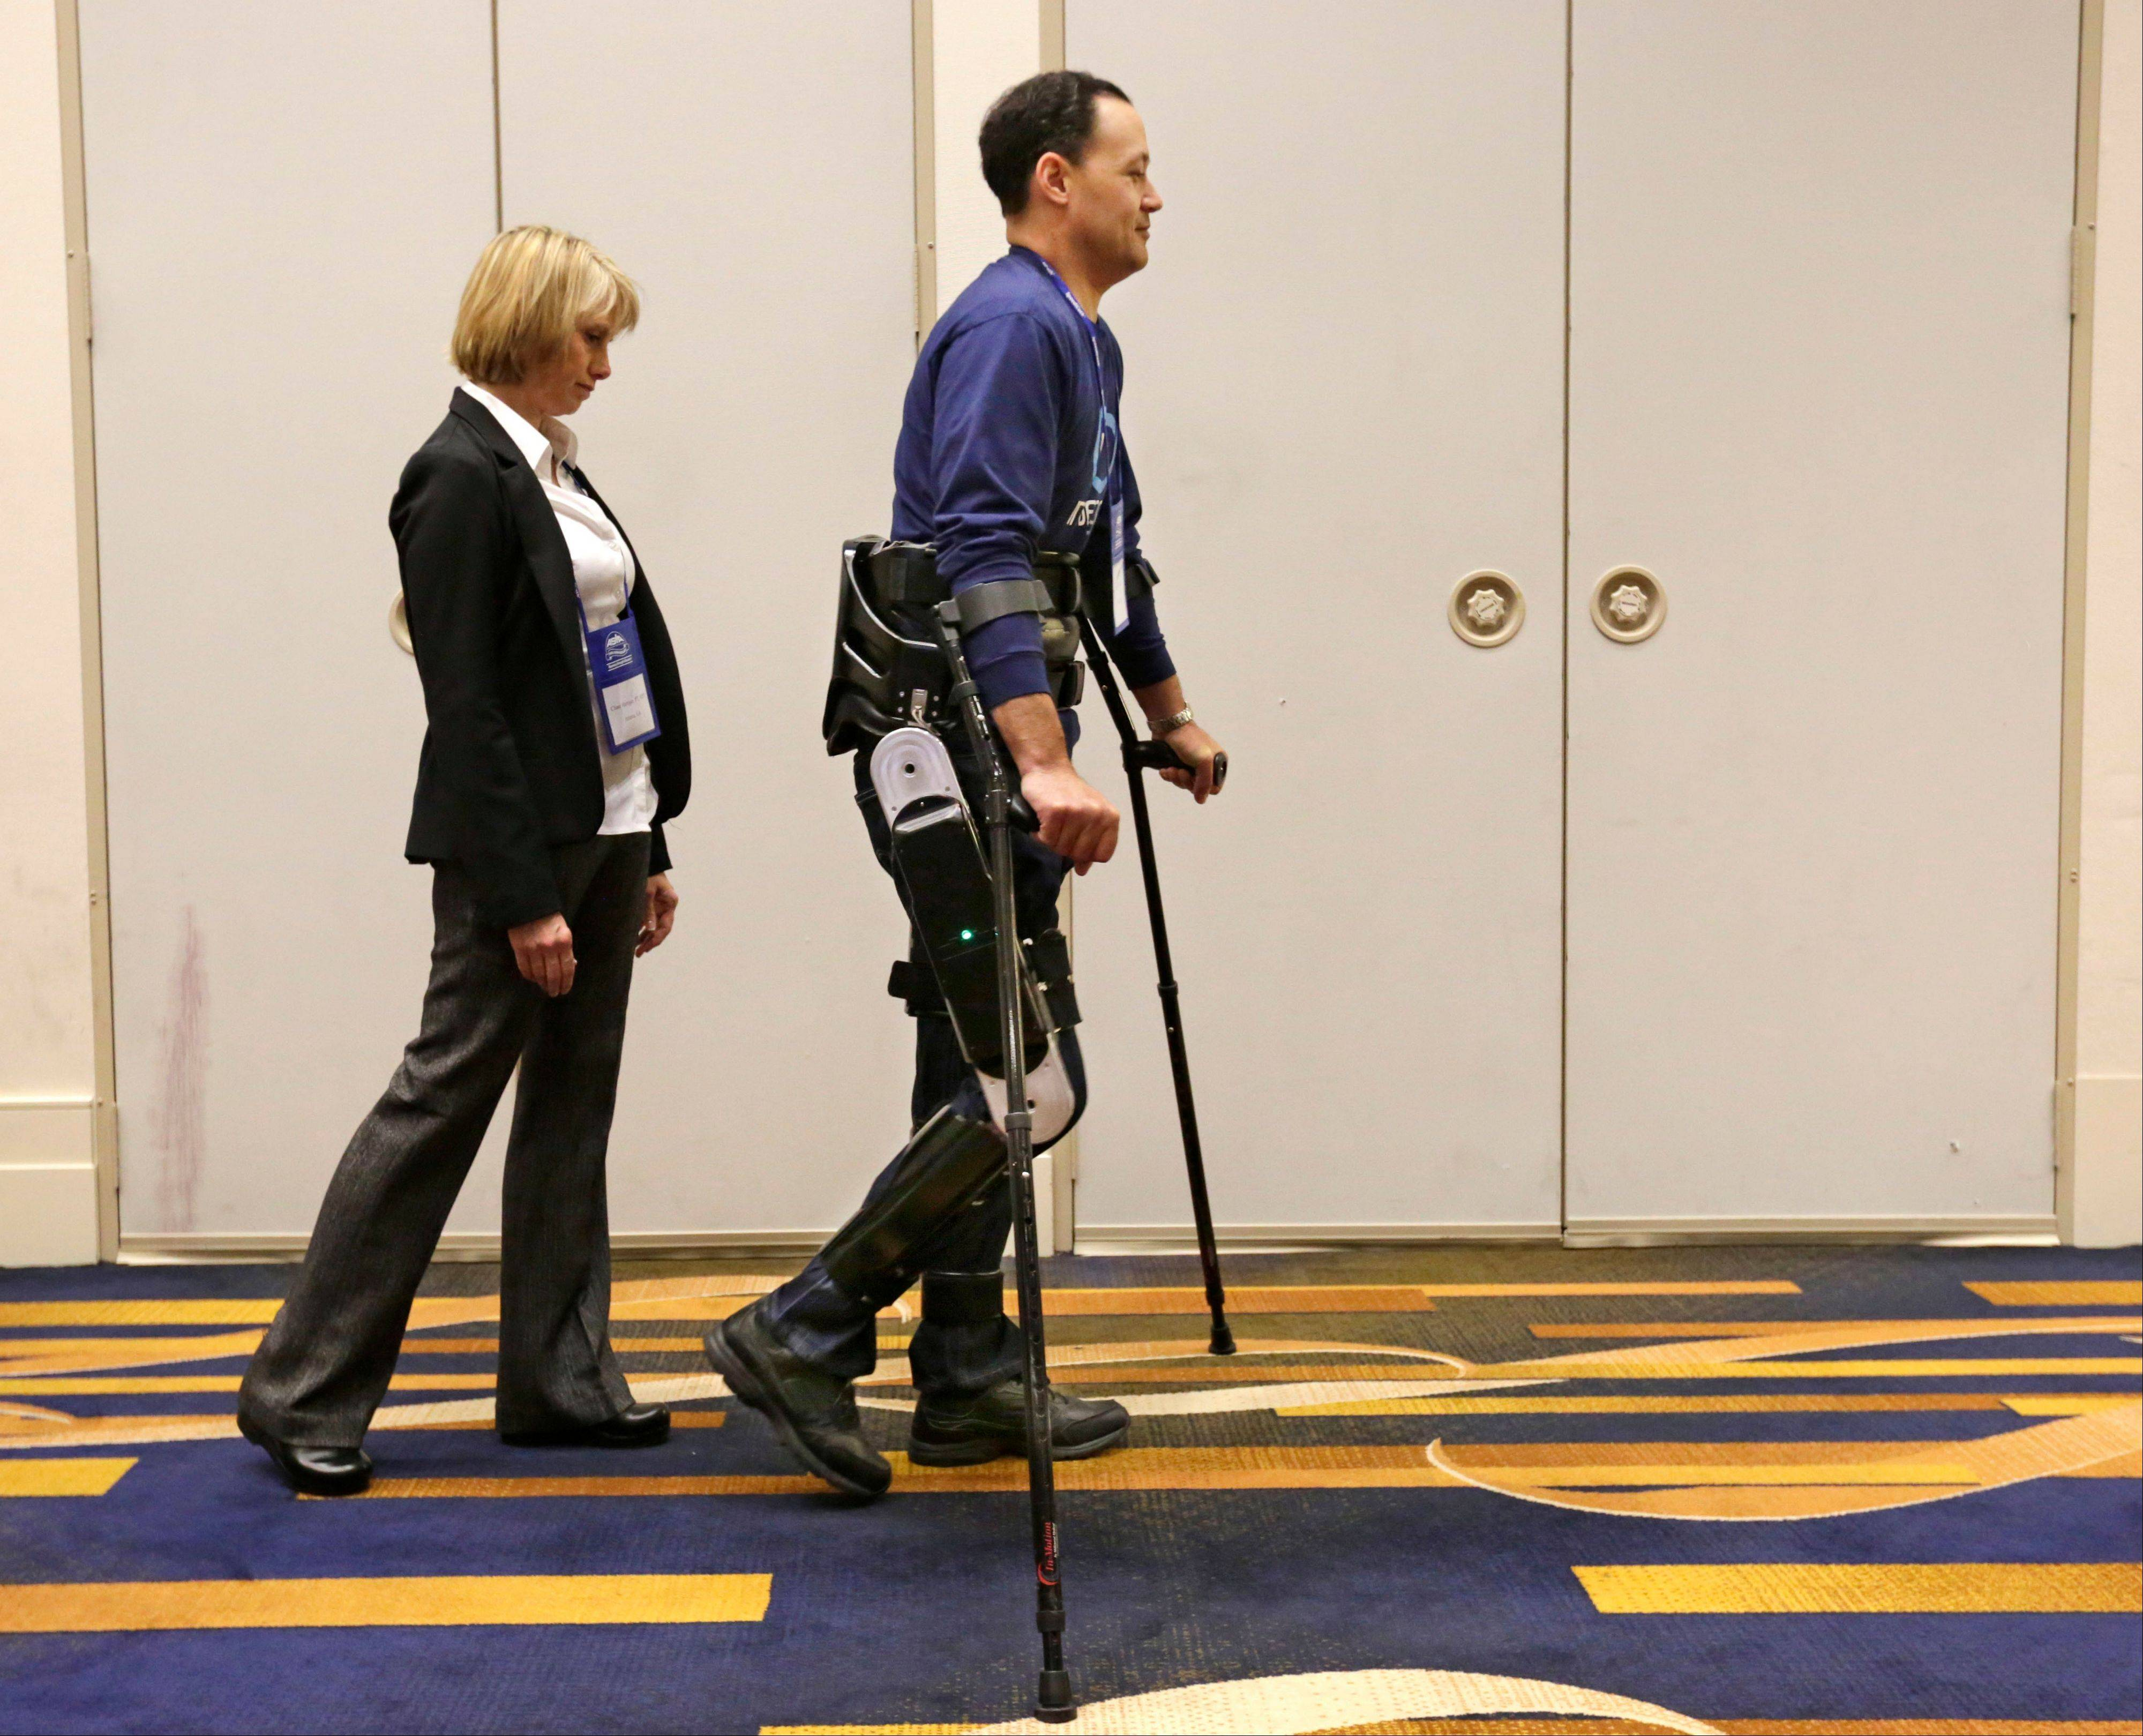 Michael Gore, who is paralyzed from a spinal injury, walks with the use of the Indego wearable robot under the supervision of physical therapist Clare Hartigan during a meeting of the American Spinal Injury Association at a downtown hotel in Chicago.